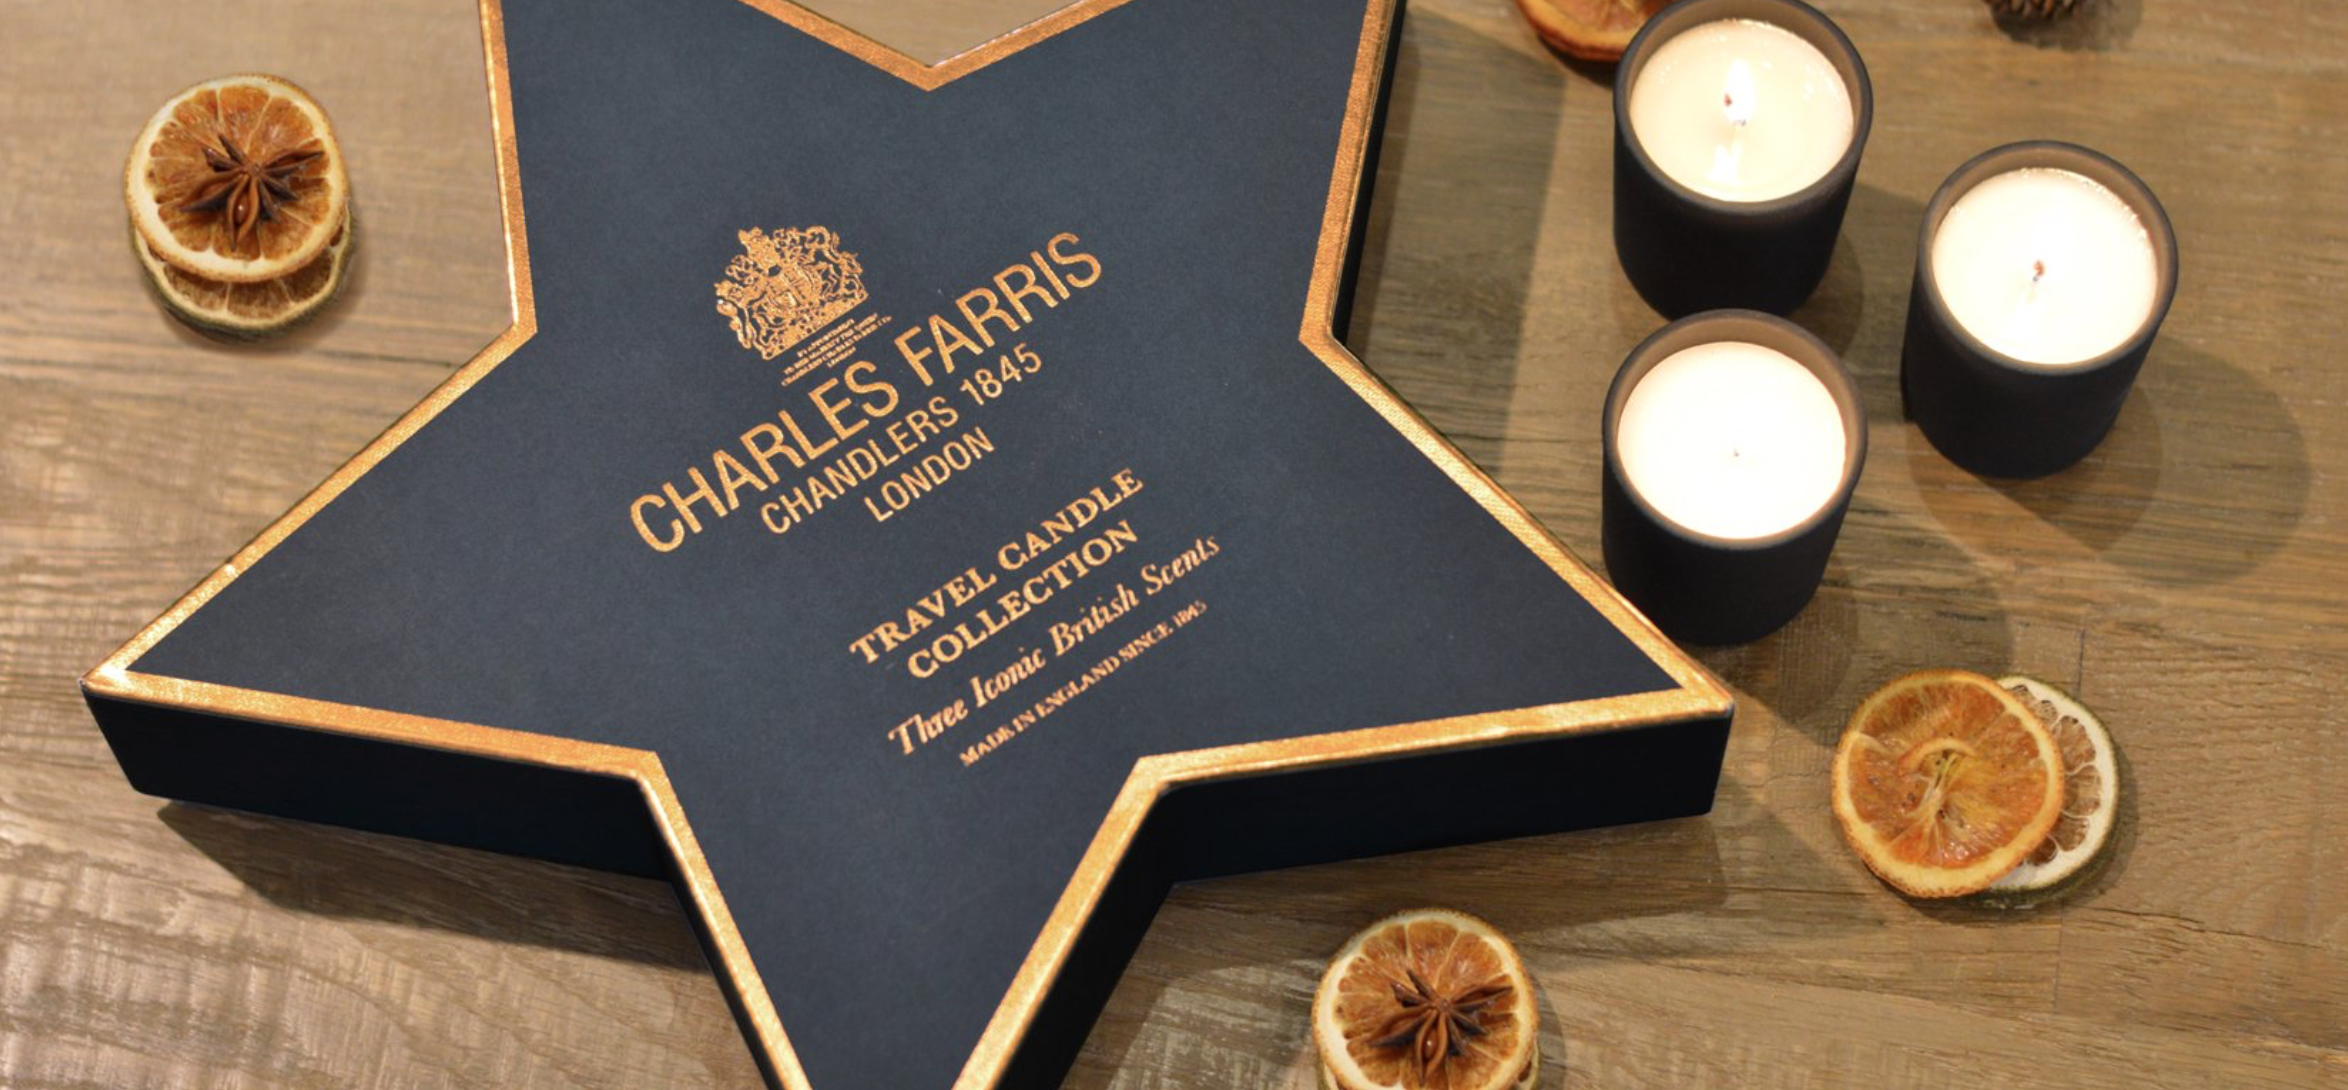 Charles Farris Pop Up Feature Image